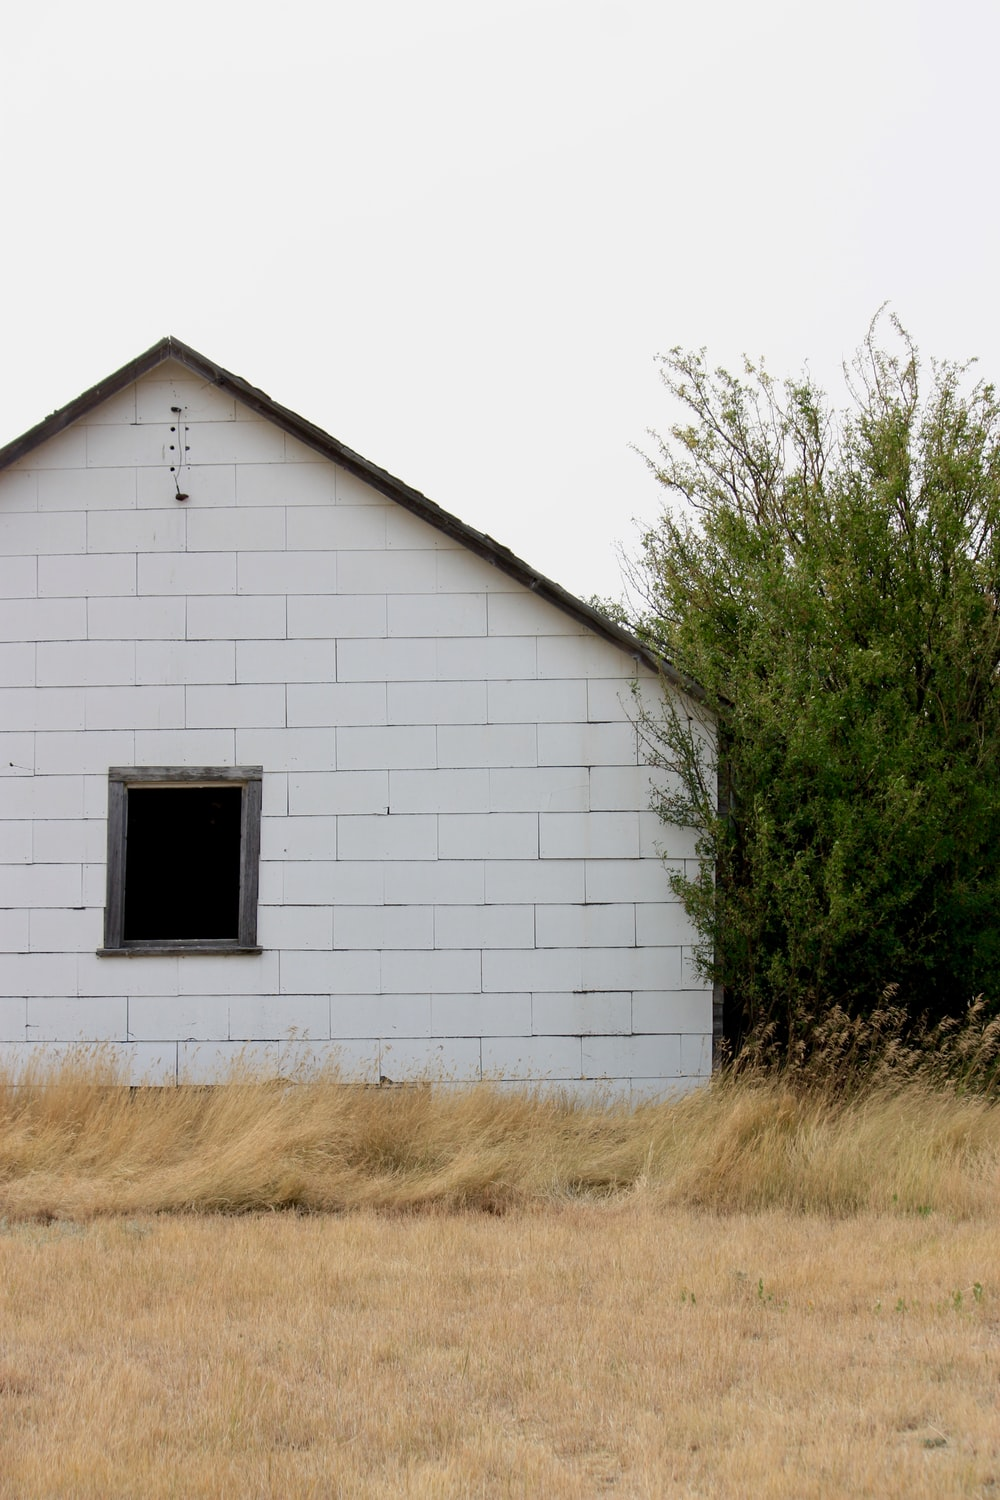 white wooden house near green tree during daytime